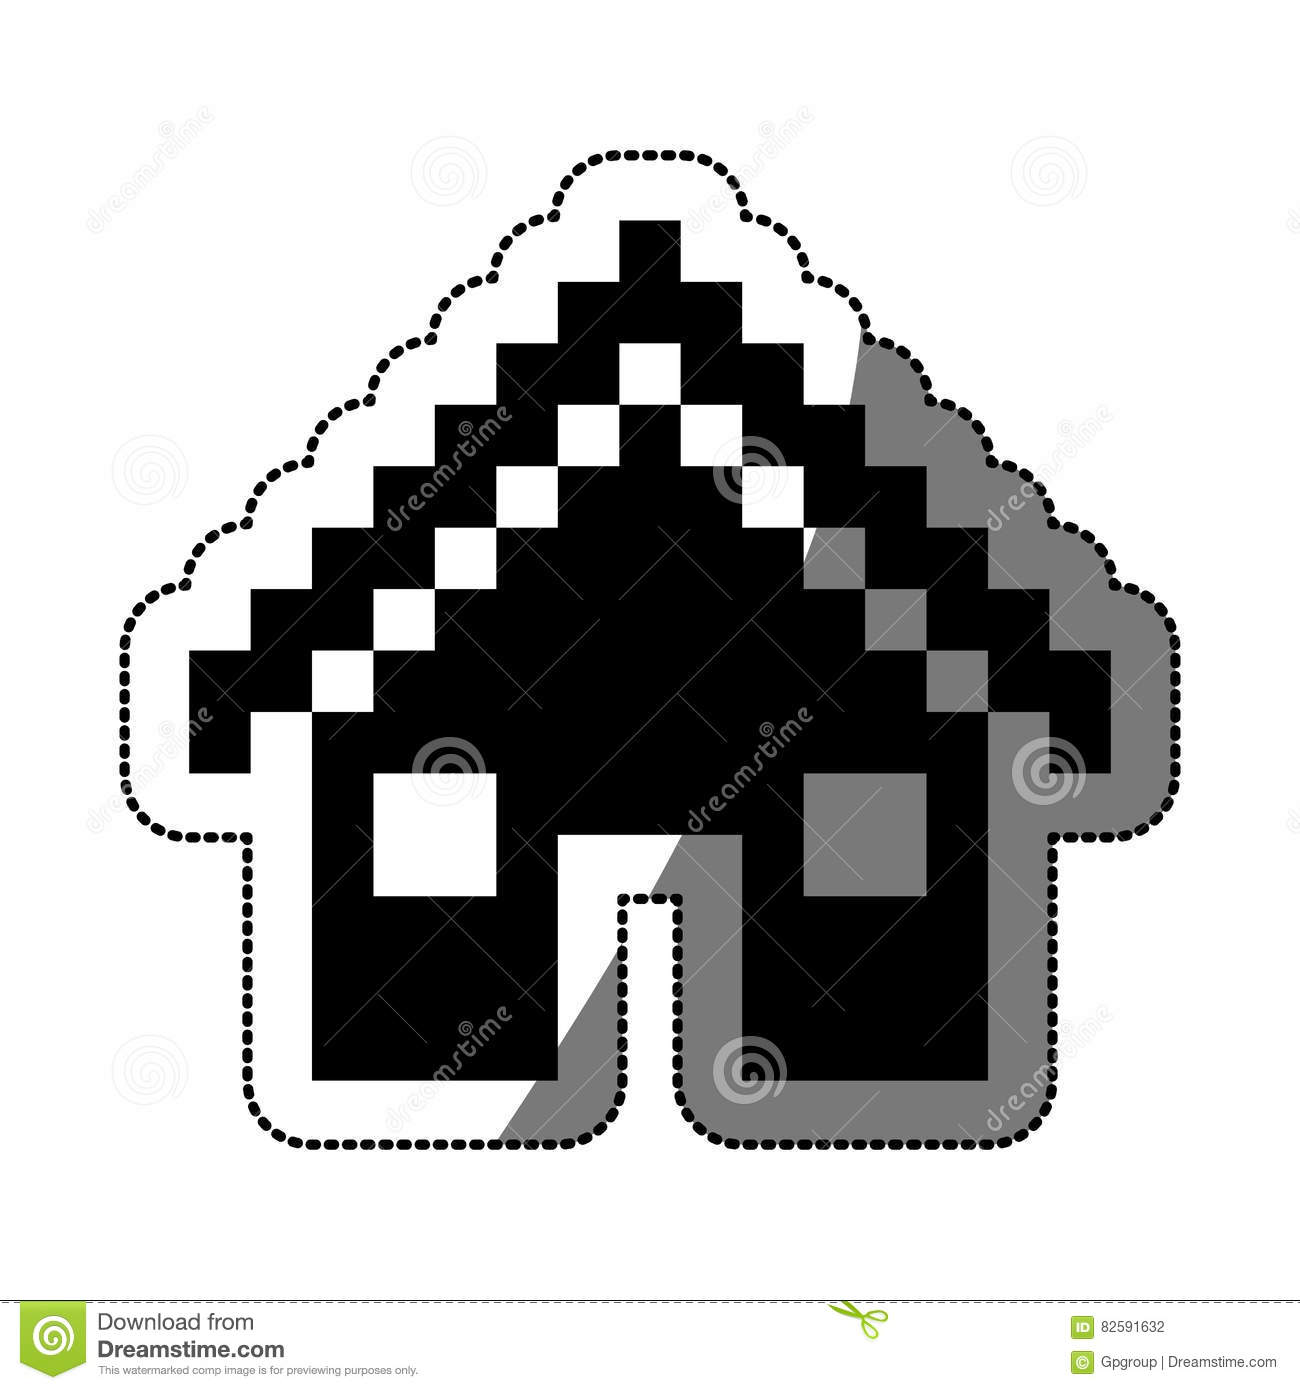 Isolated Pixel House Design Stock Vector Illustration Of